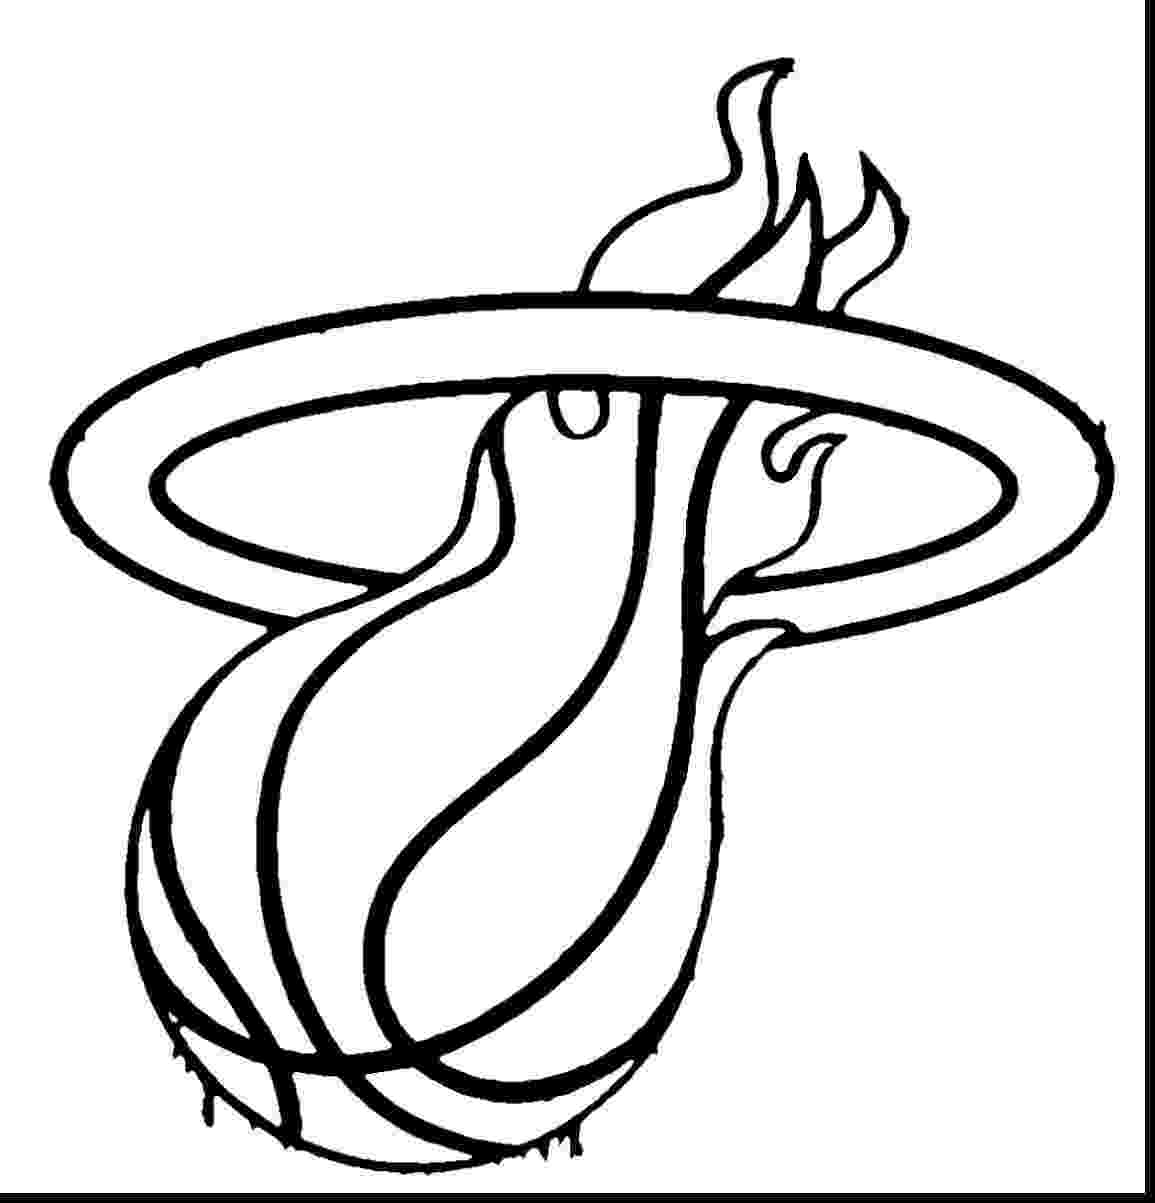 miami heat coloring sheets angry birds and miami heat nba coloring pages heat sheets coloring miami